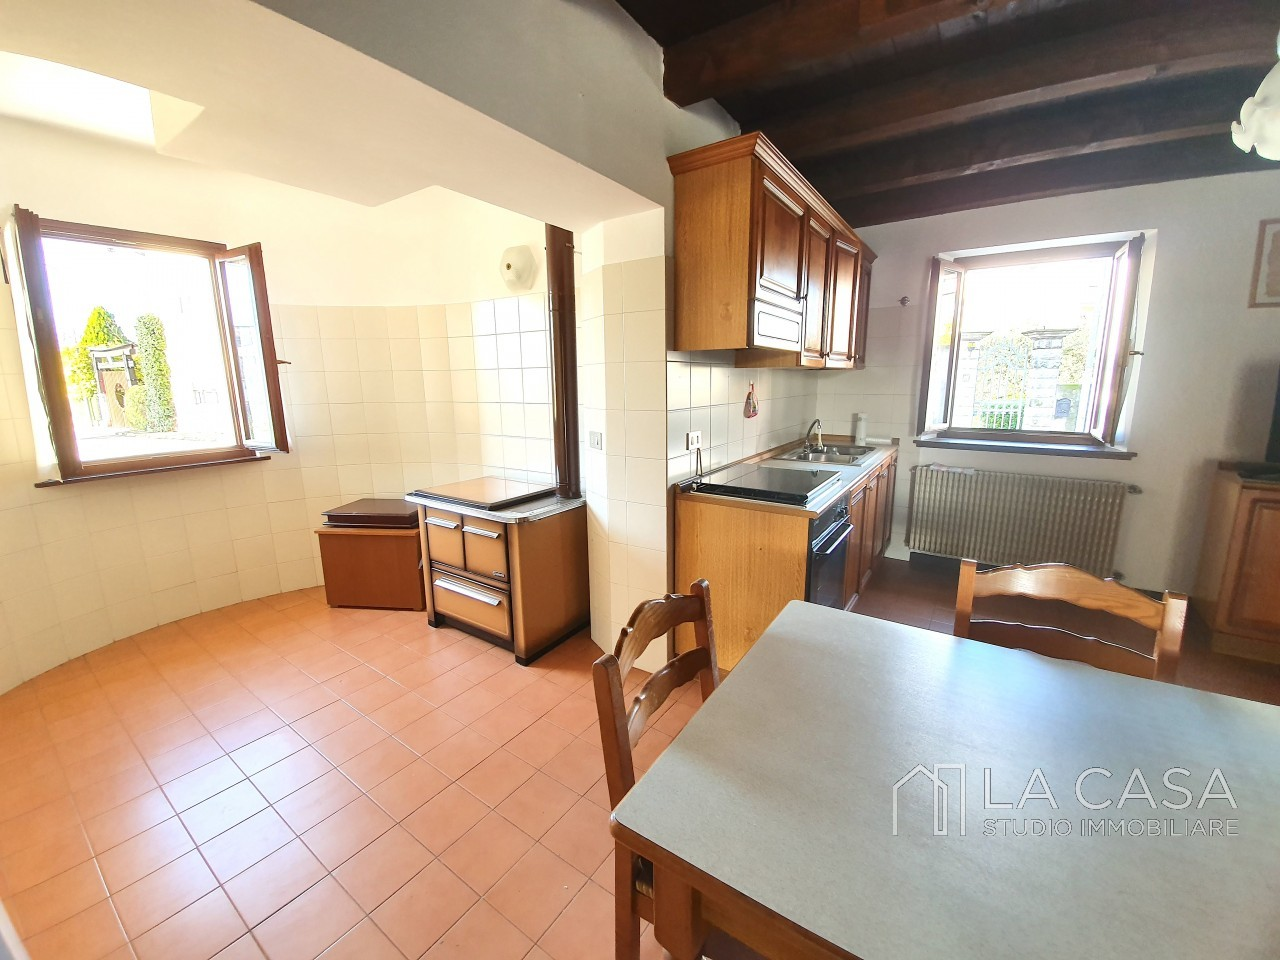 Casa indipendente in Linea - Rif.C6 https://images.gestionaleimmobiliare.it/foto/annunci/191125/2114313/1280x1280/009__20191125_120230_wmk_1.jpg